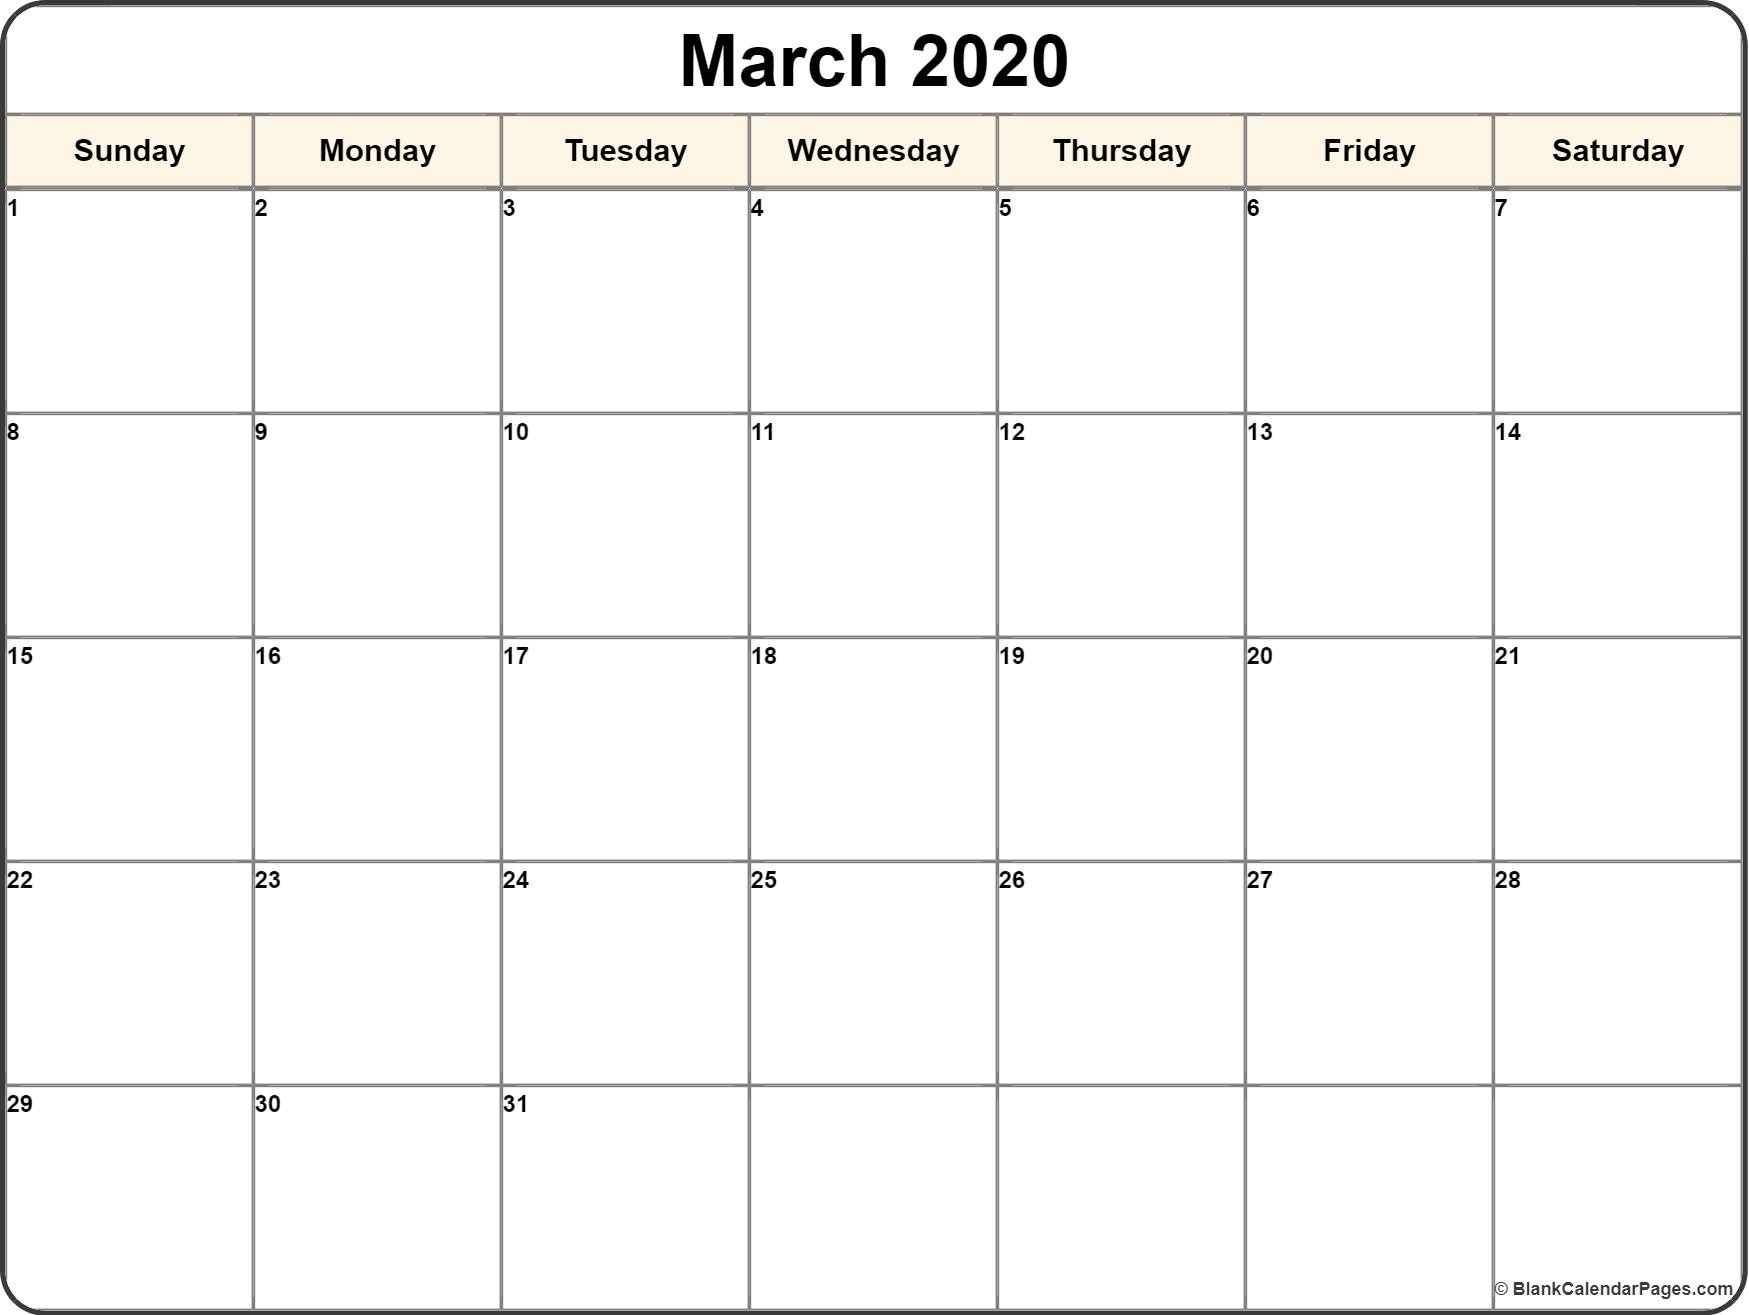 March 2020 Calendar | Free Printable Monthly Calendars